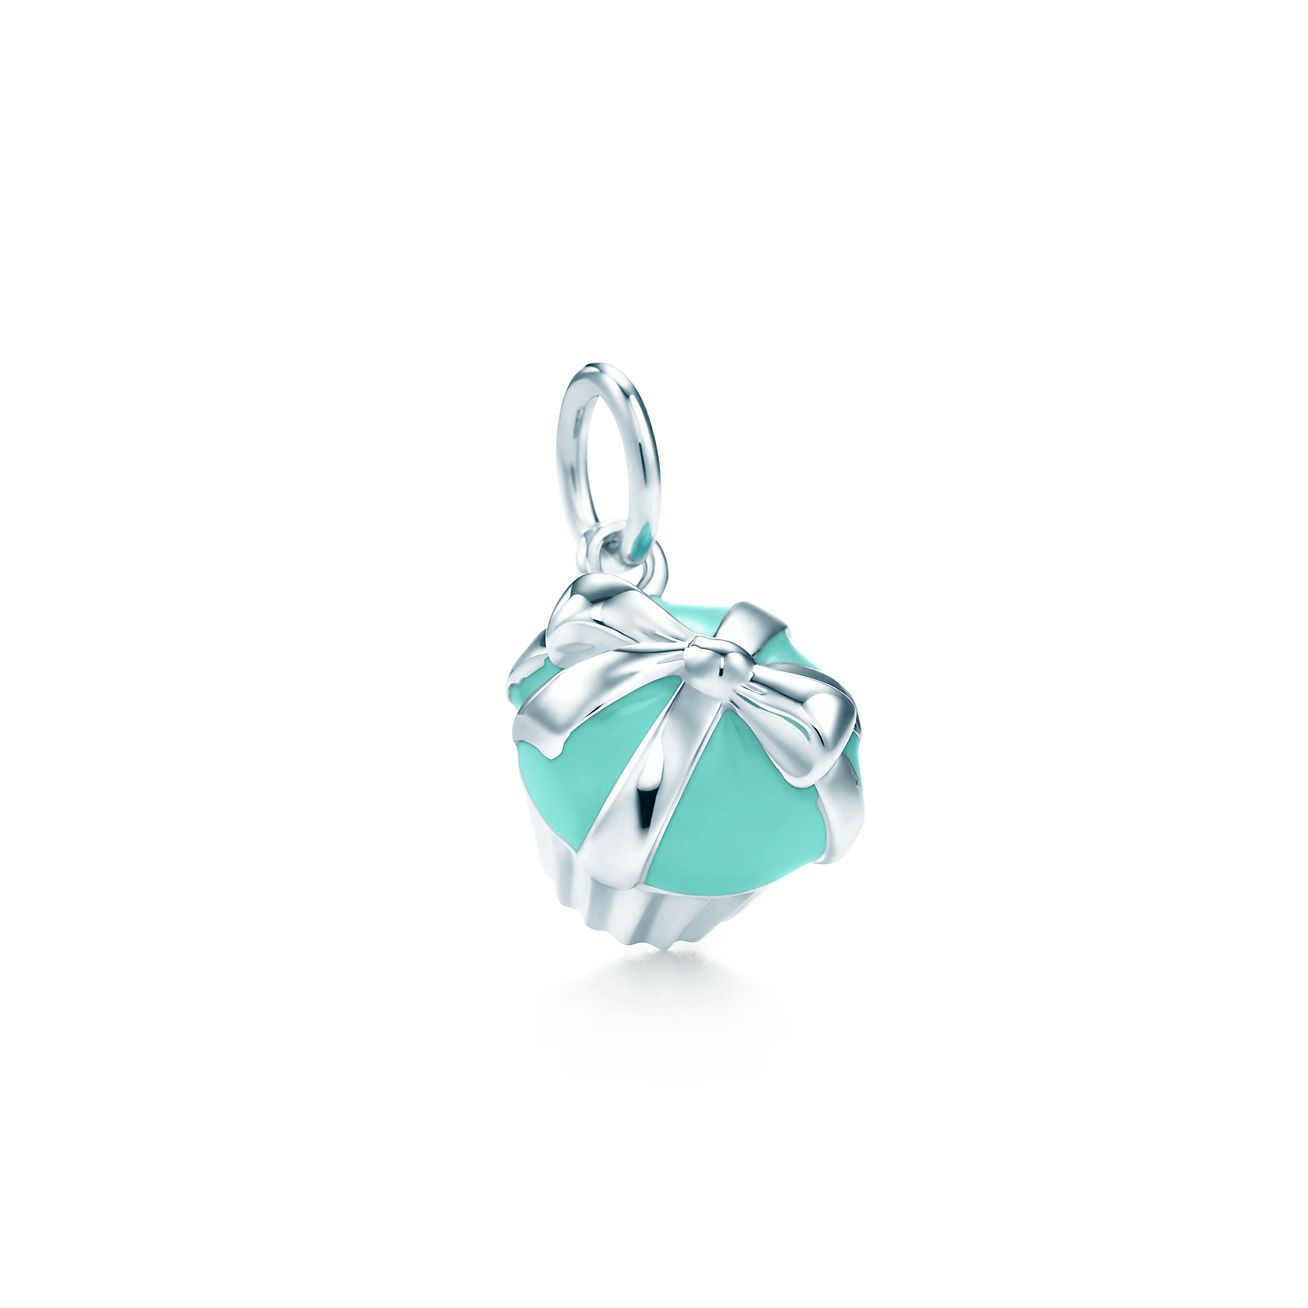 cupcake charm in sterling silver with blue enamel